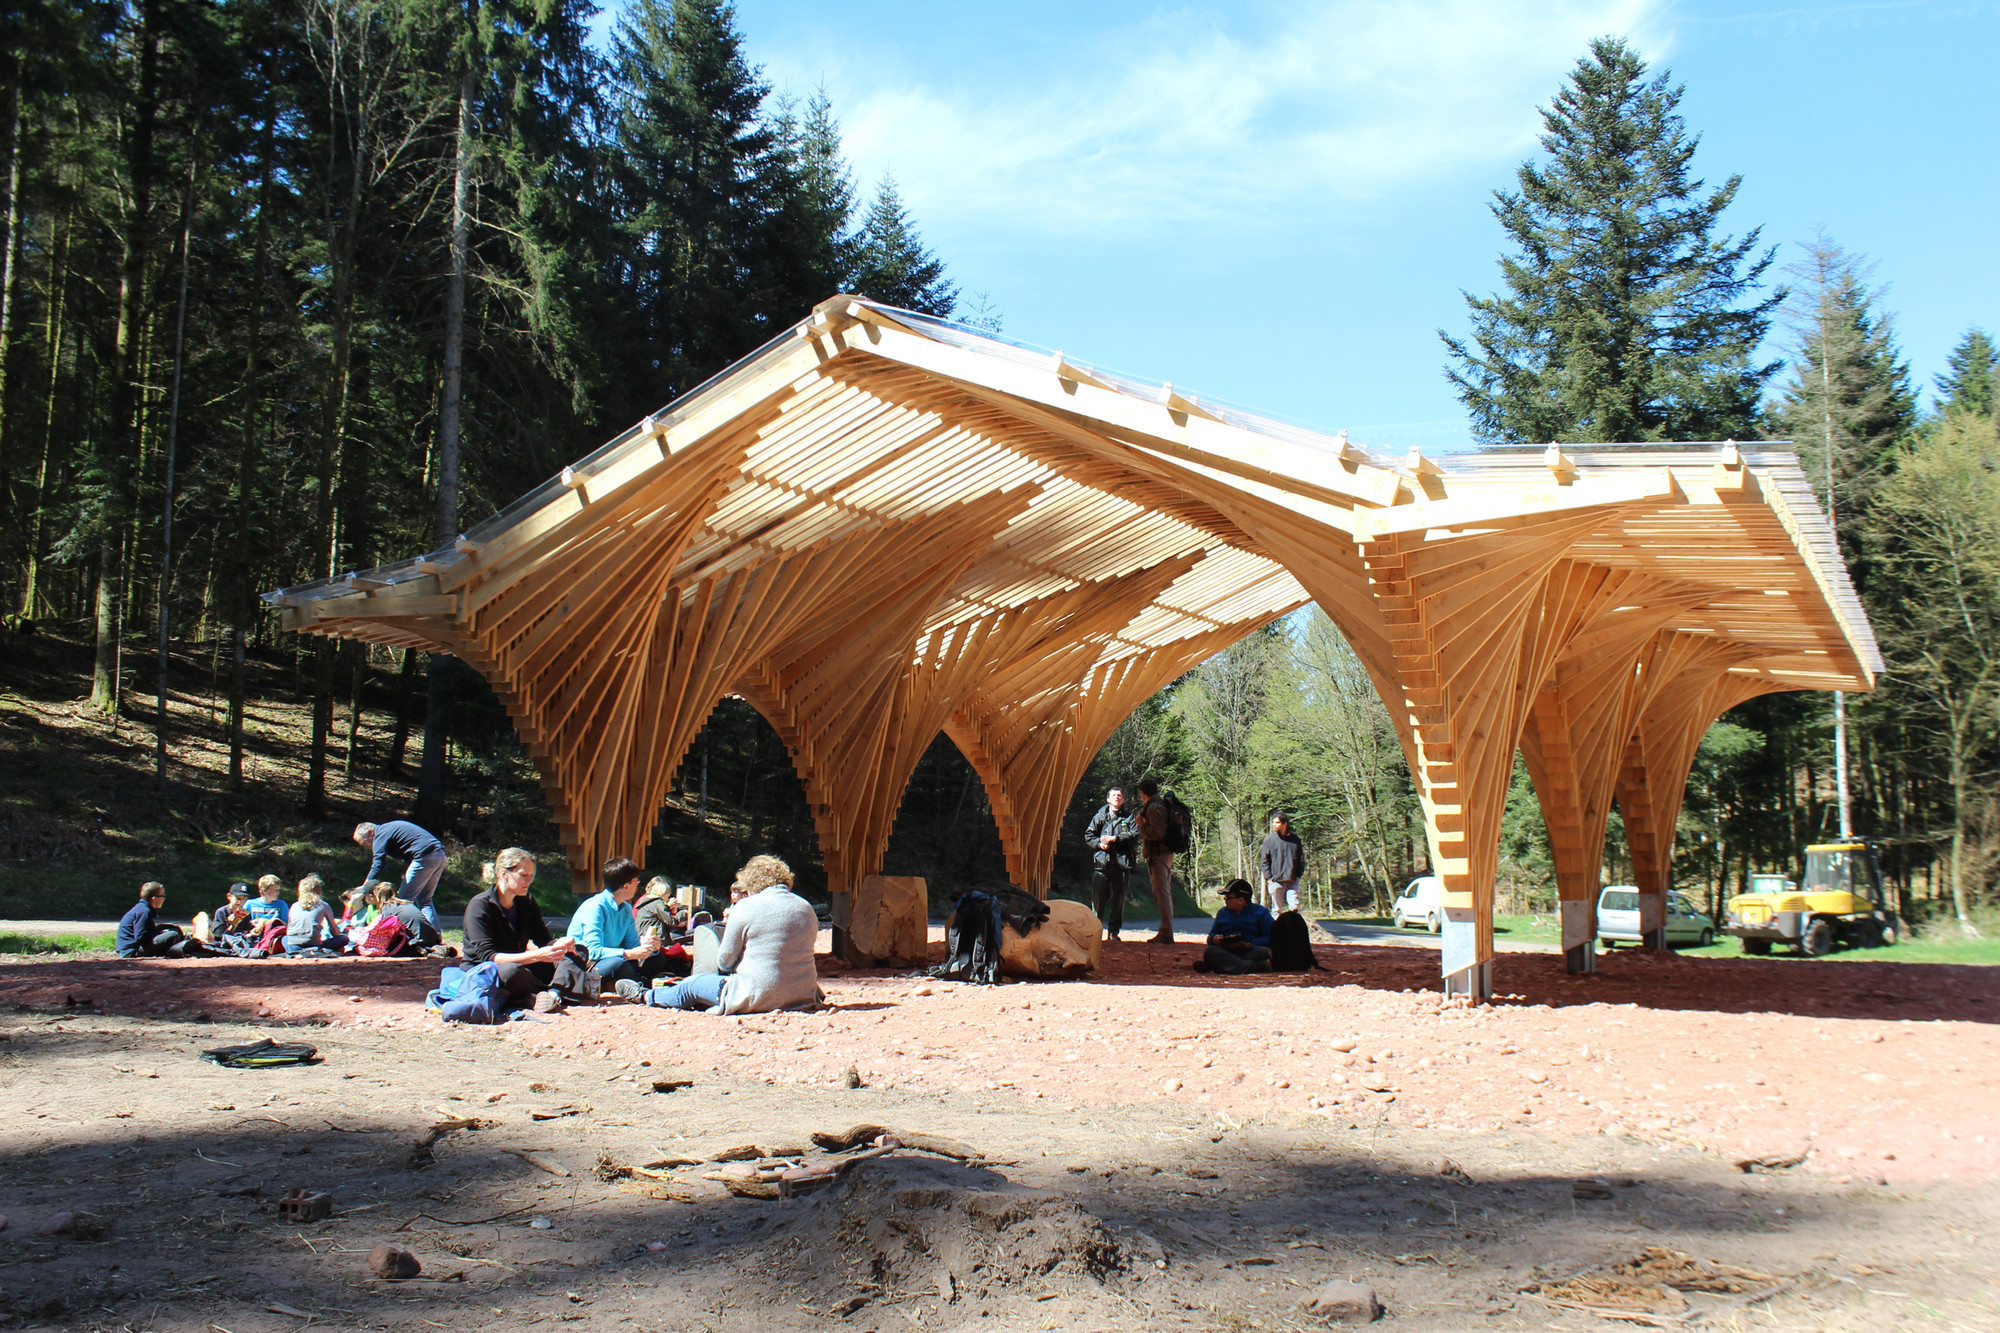 Creation of a Forest Shelter at Bertrichamp / Studiolada Architectes + Yoann Saehr Architect, © Christophe Aubertin